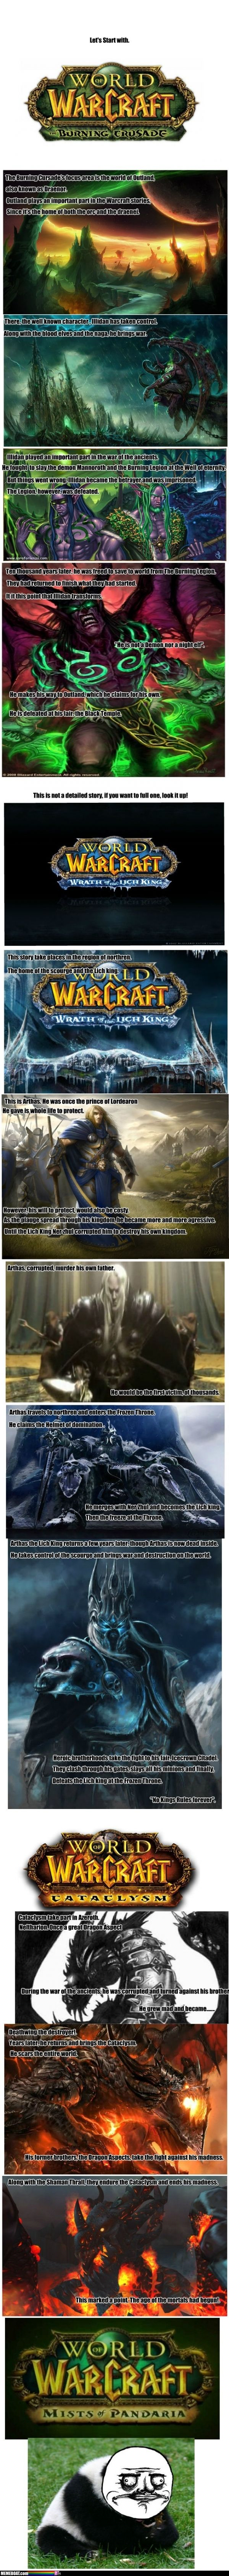 The World Of Warcraft Villians i laughed way too much at this lol